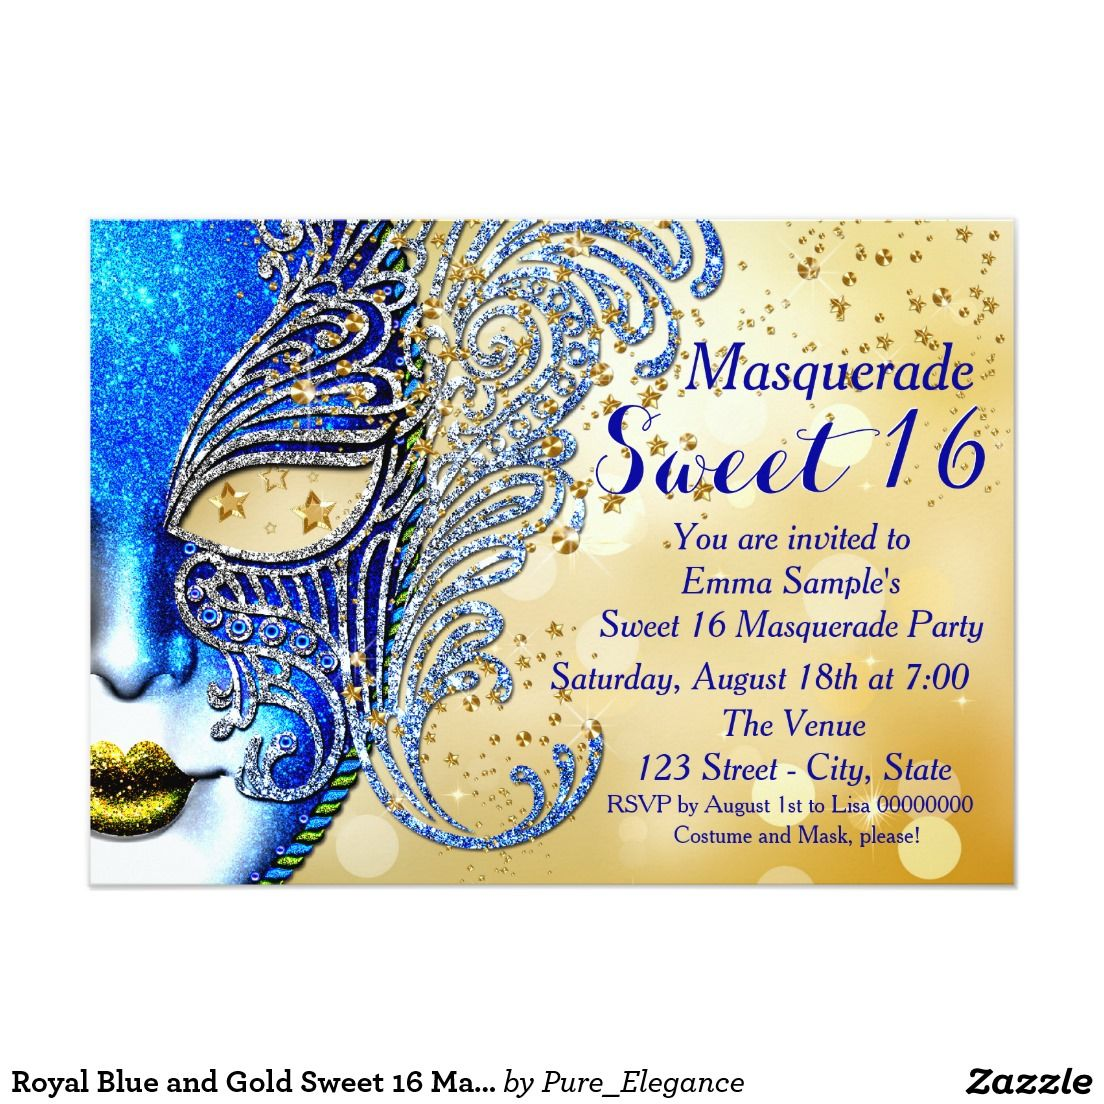 Royal Blue and Gold Sweet 16 Masquerade Party Invitation | Sweet ...